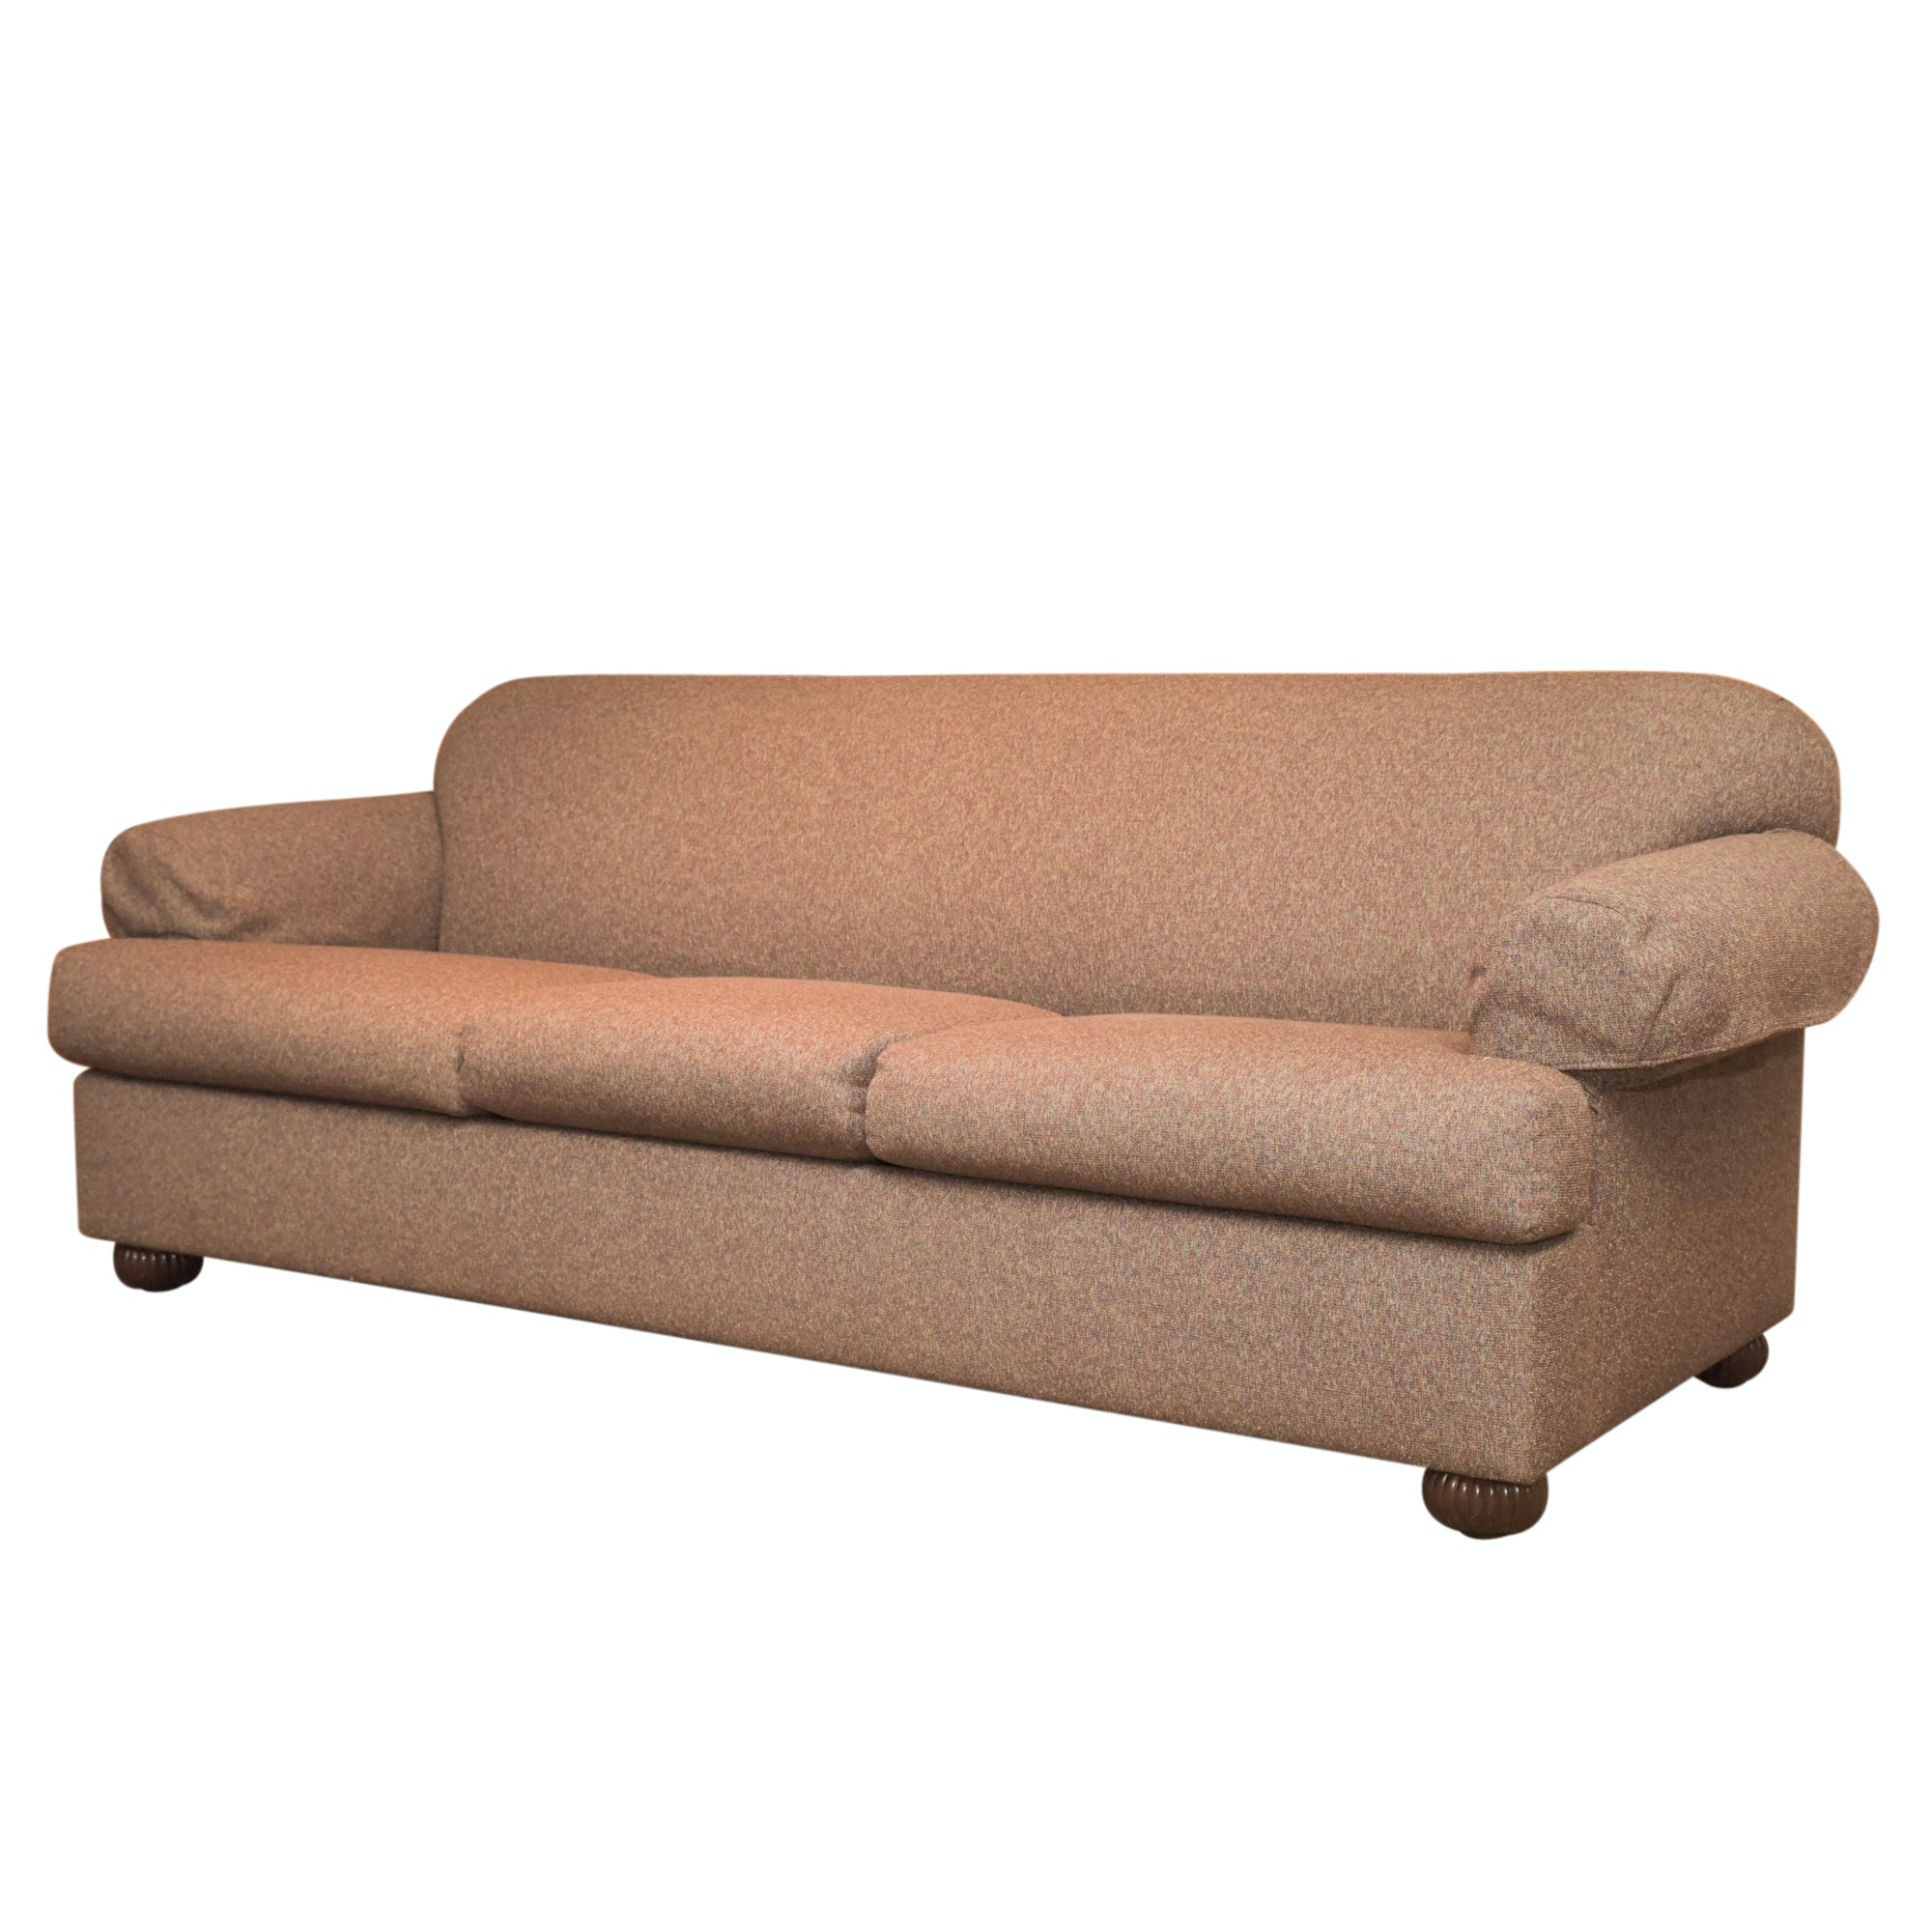 Taupe Brown Upholstered Sleeper Sofa